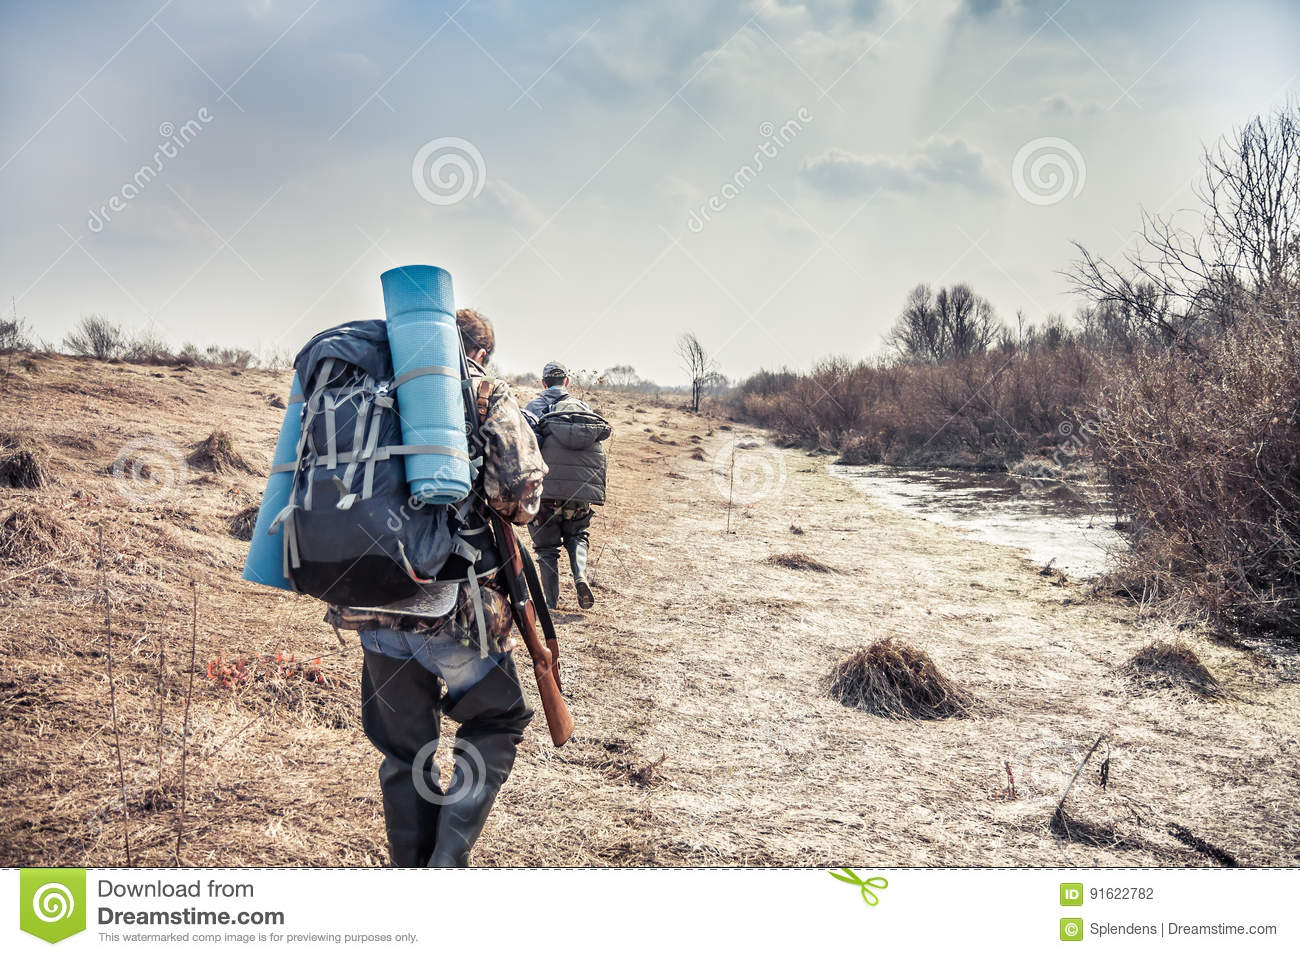 Hunting scene with hunters with backpack and hunting equipment going across rural area during hunting season